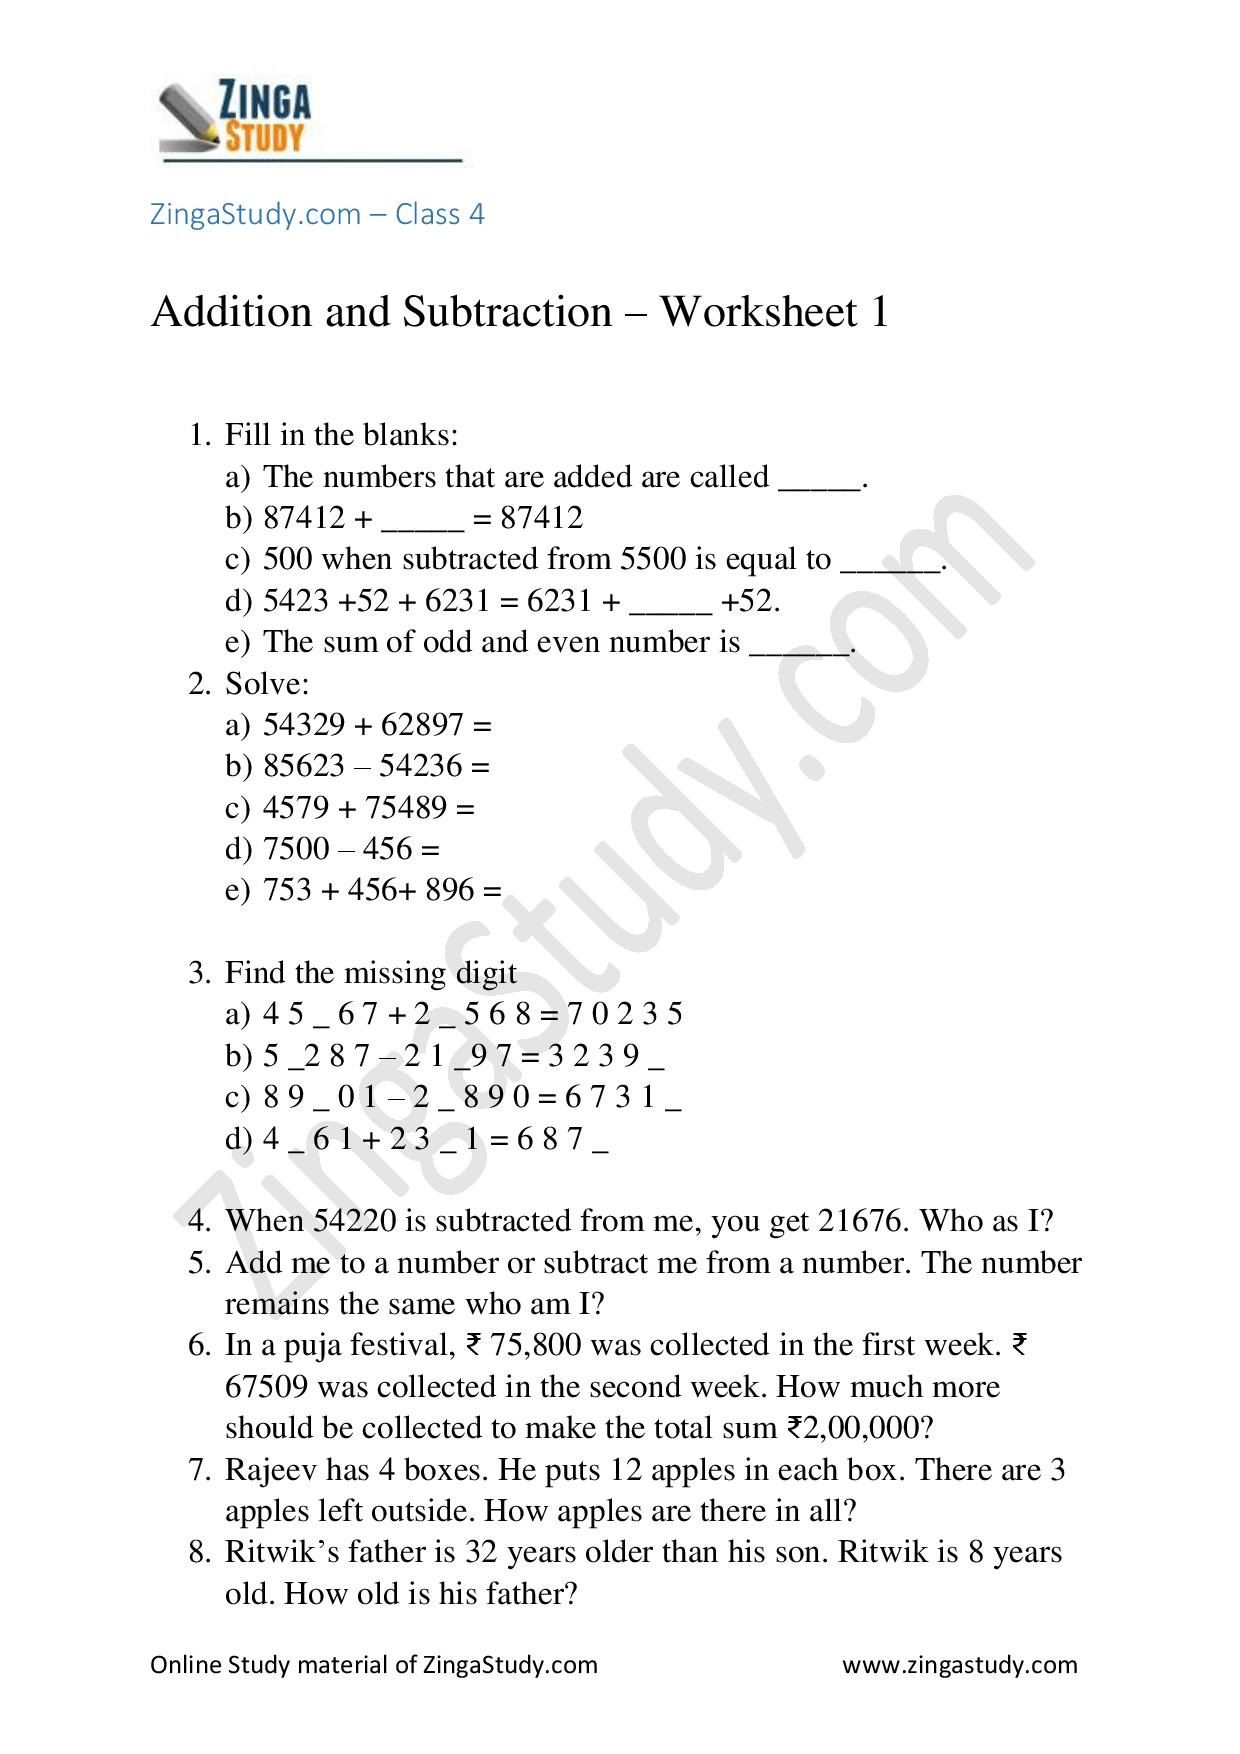 Worksheet For Grade 4 Maths To Practice Your Concepts For